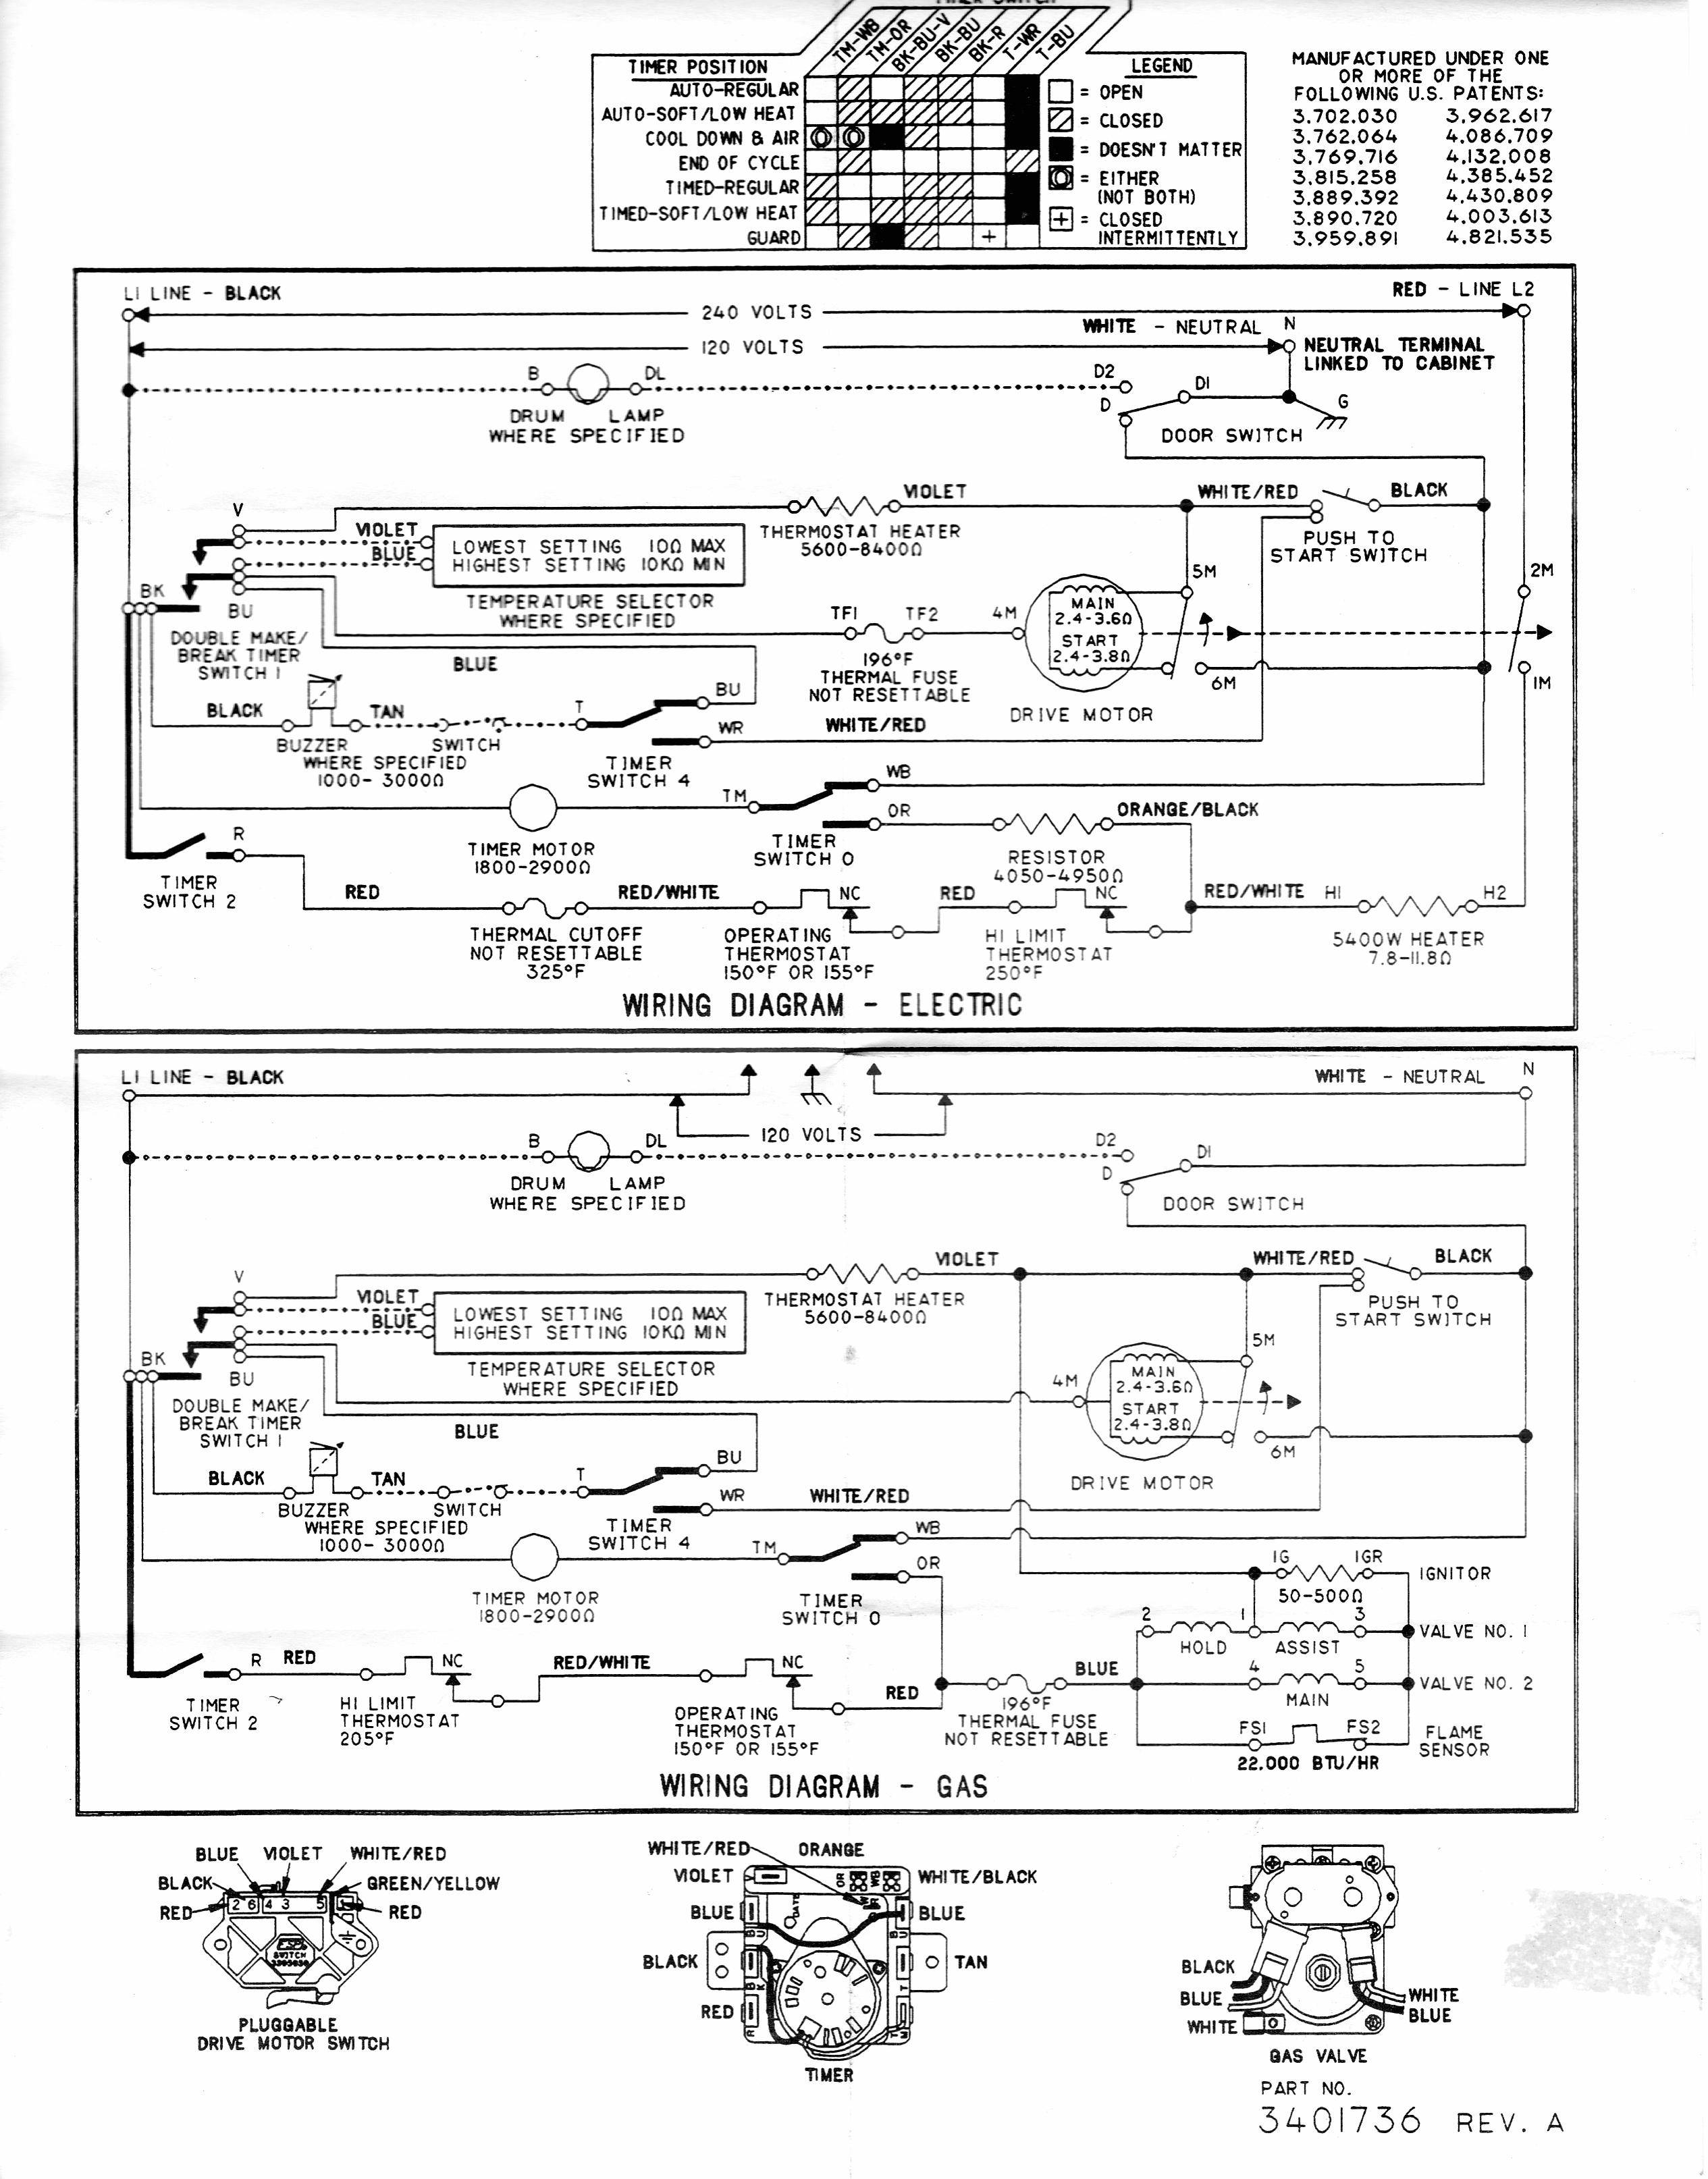 whirlpool gas dryer electrical schematic